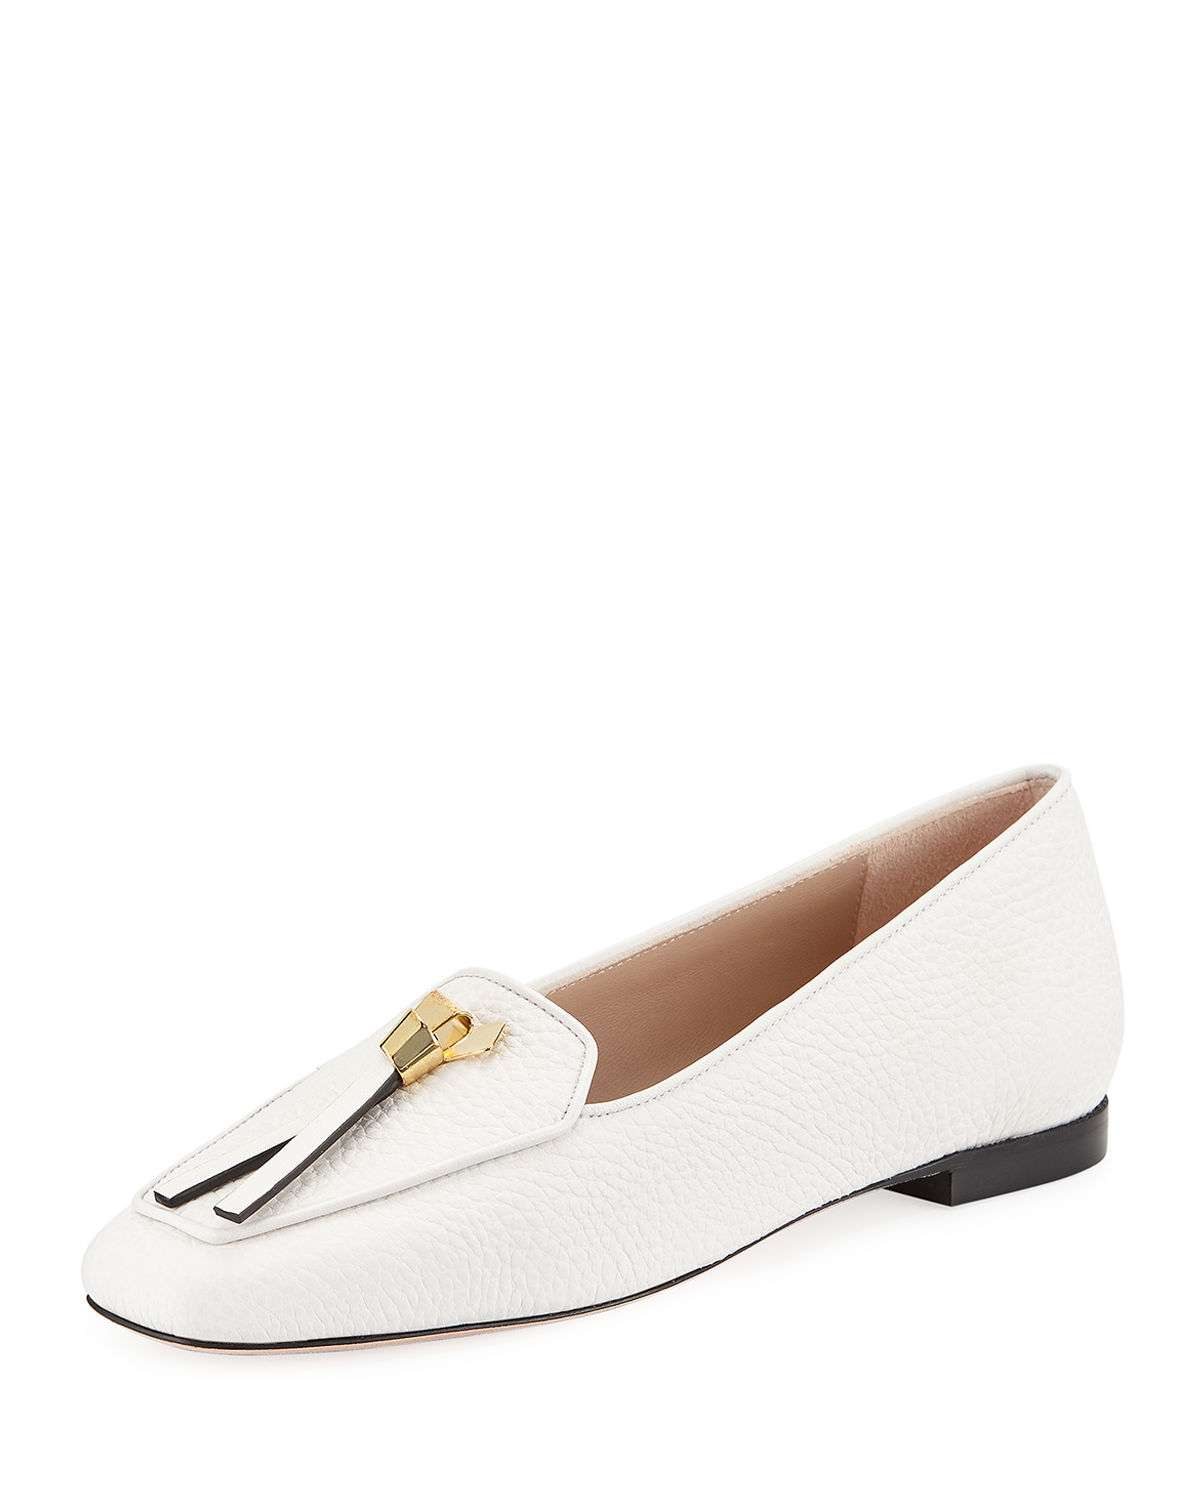 Slip-Knot Flat Loafers